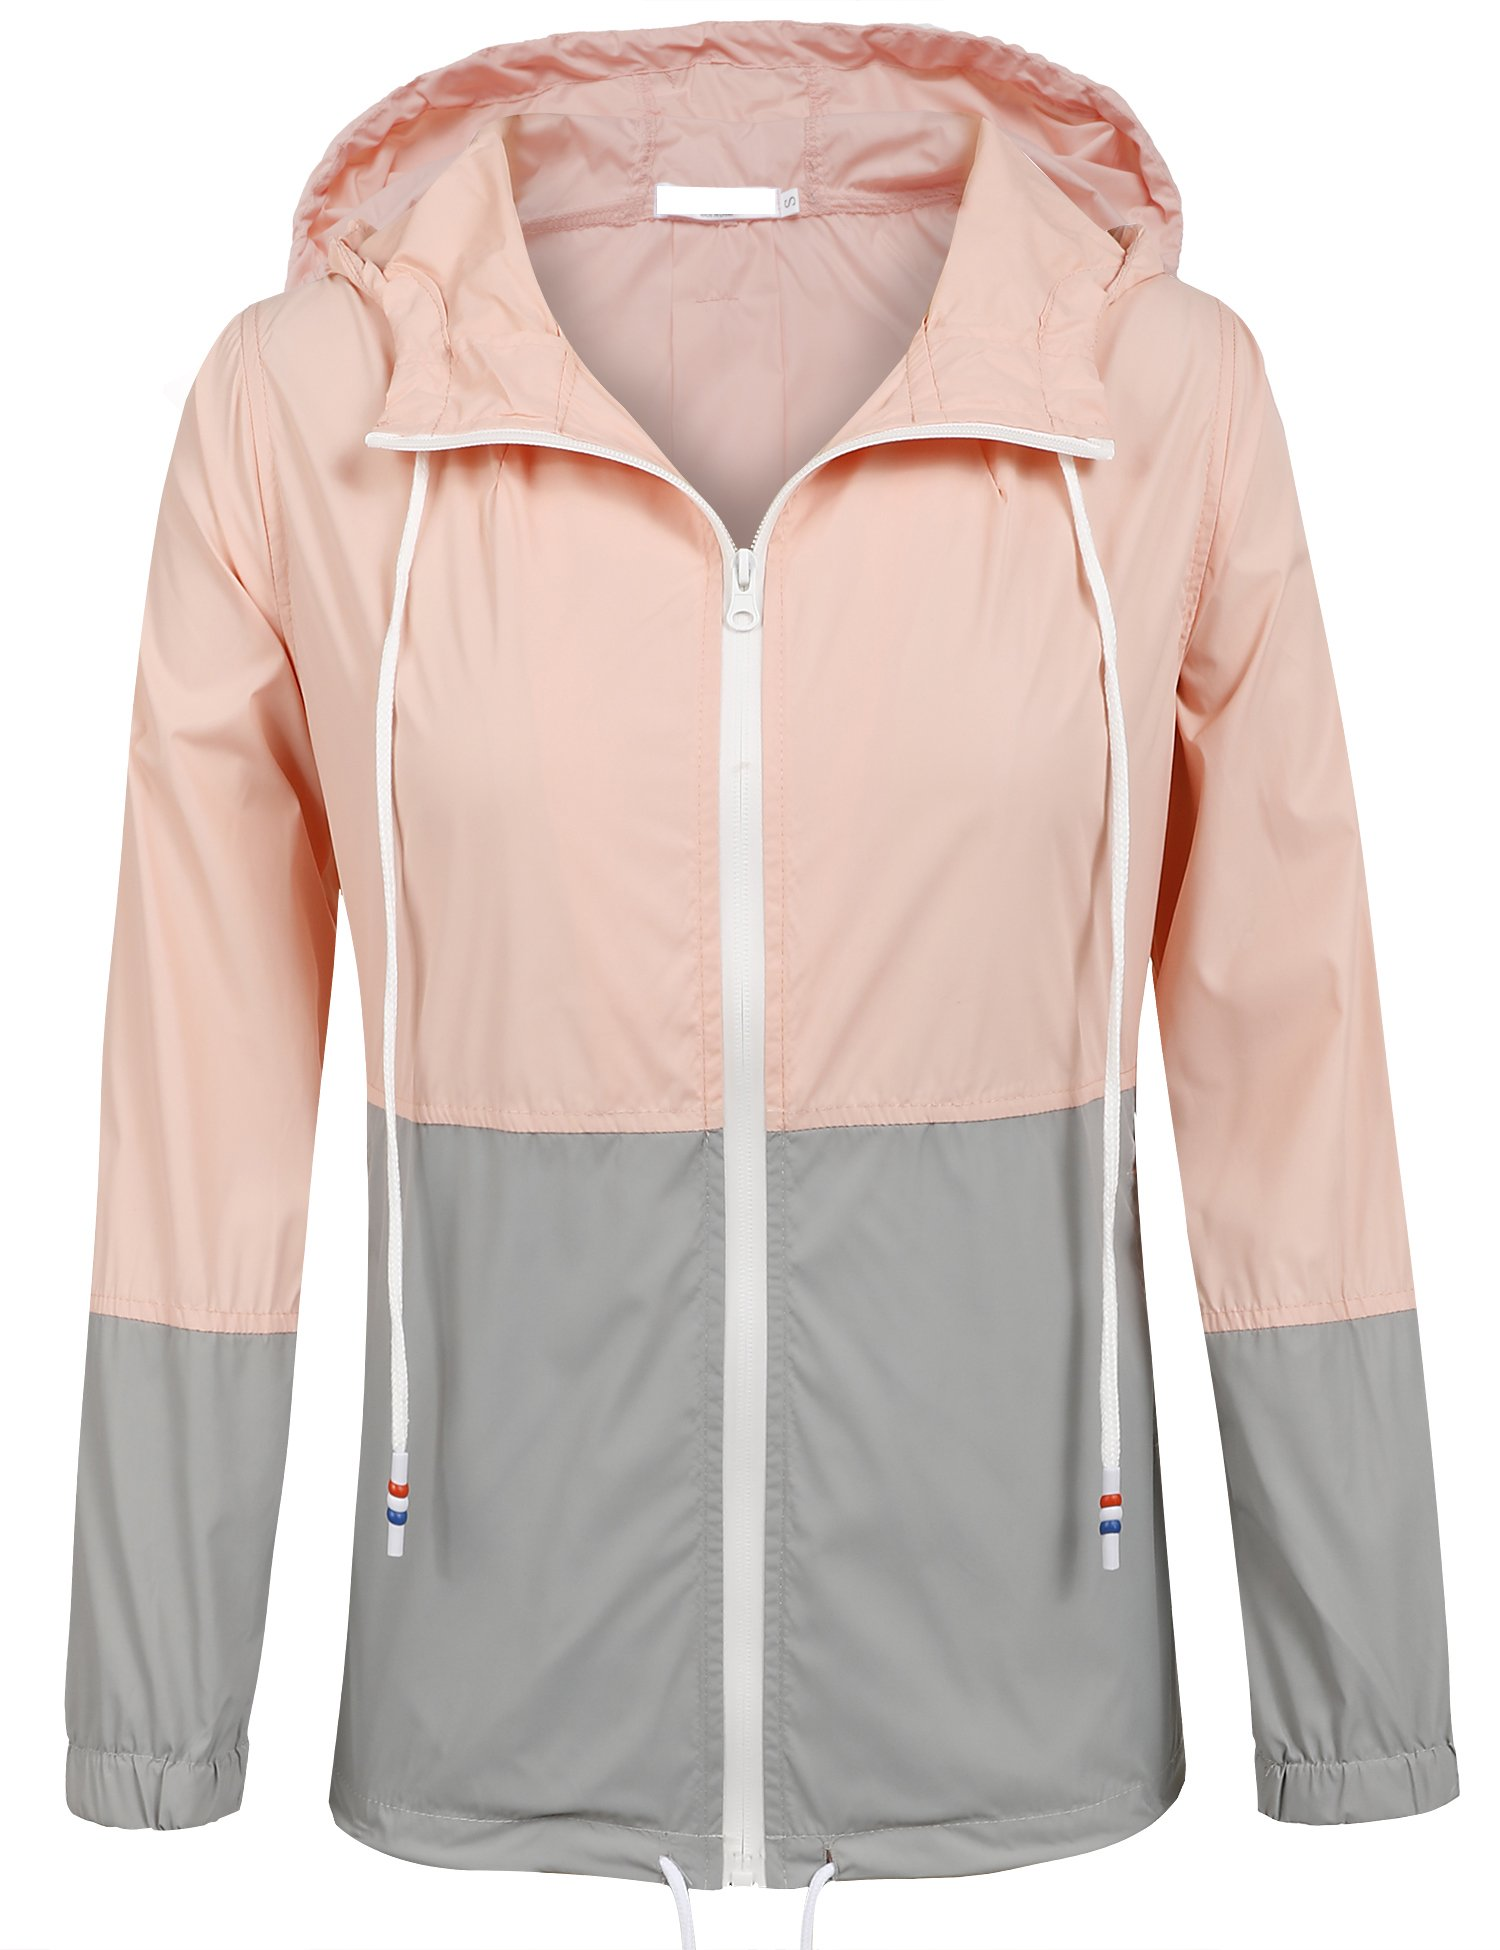 SoTeer Womens Lightweight Hooded Raincoat Active Outdoor Waterproof Jacket (Pink/Gray XXL)